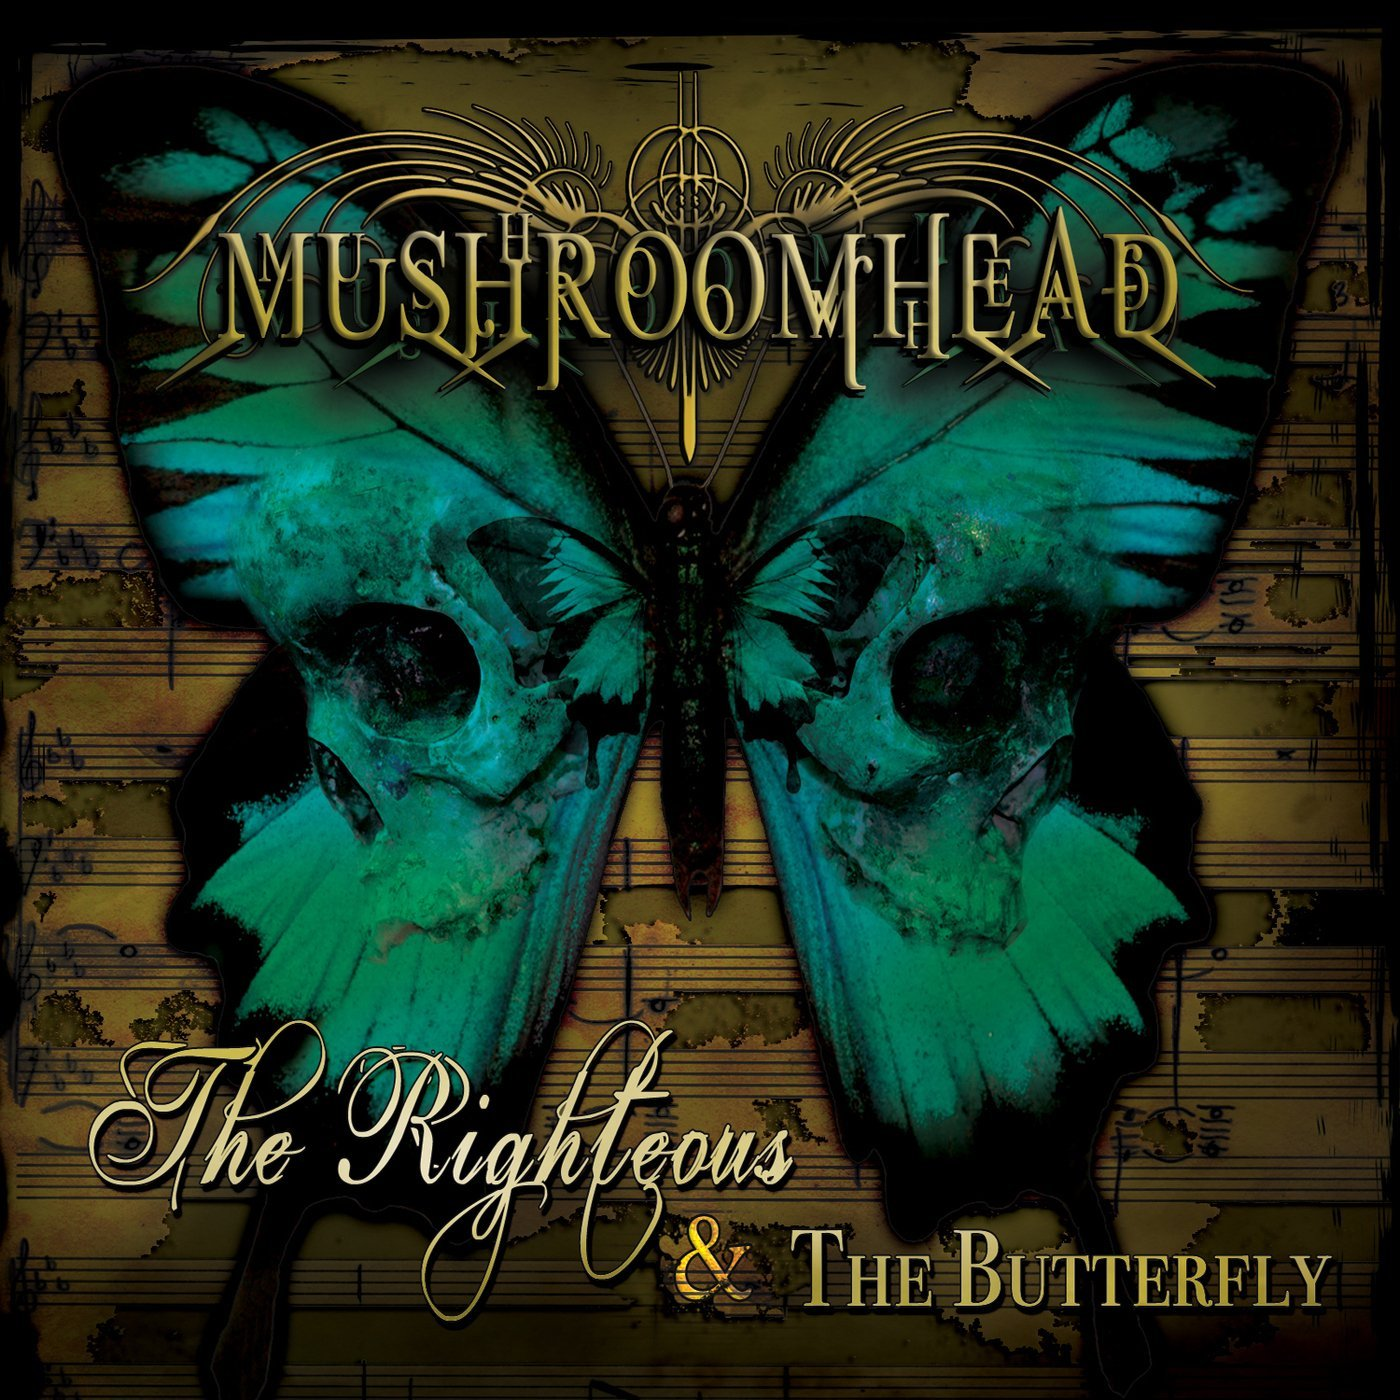 The Righteous & The Butterfly Album Cover